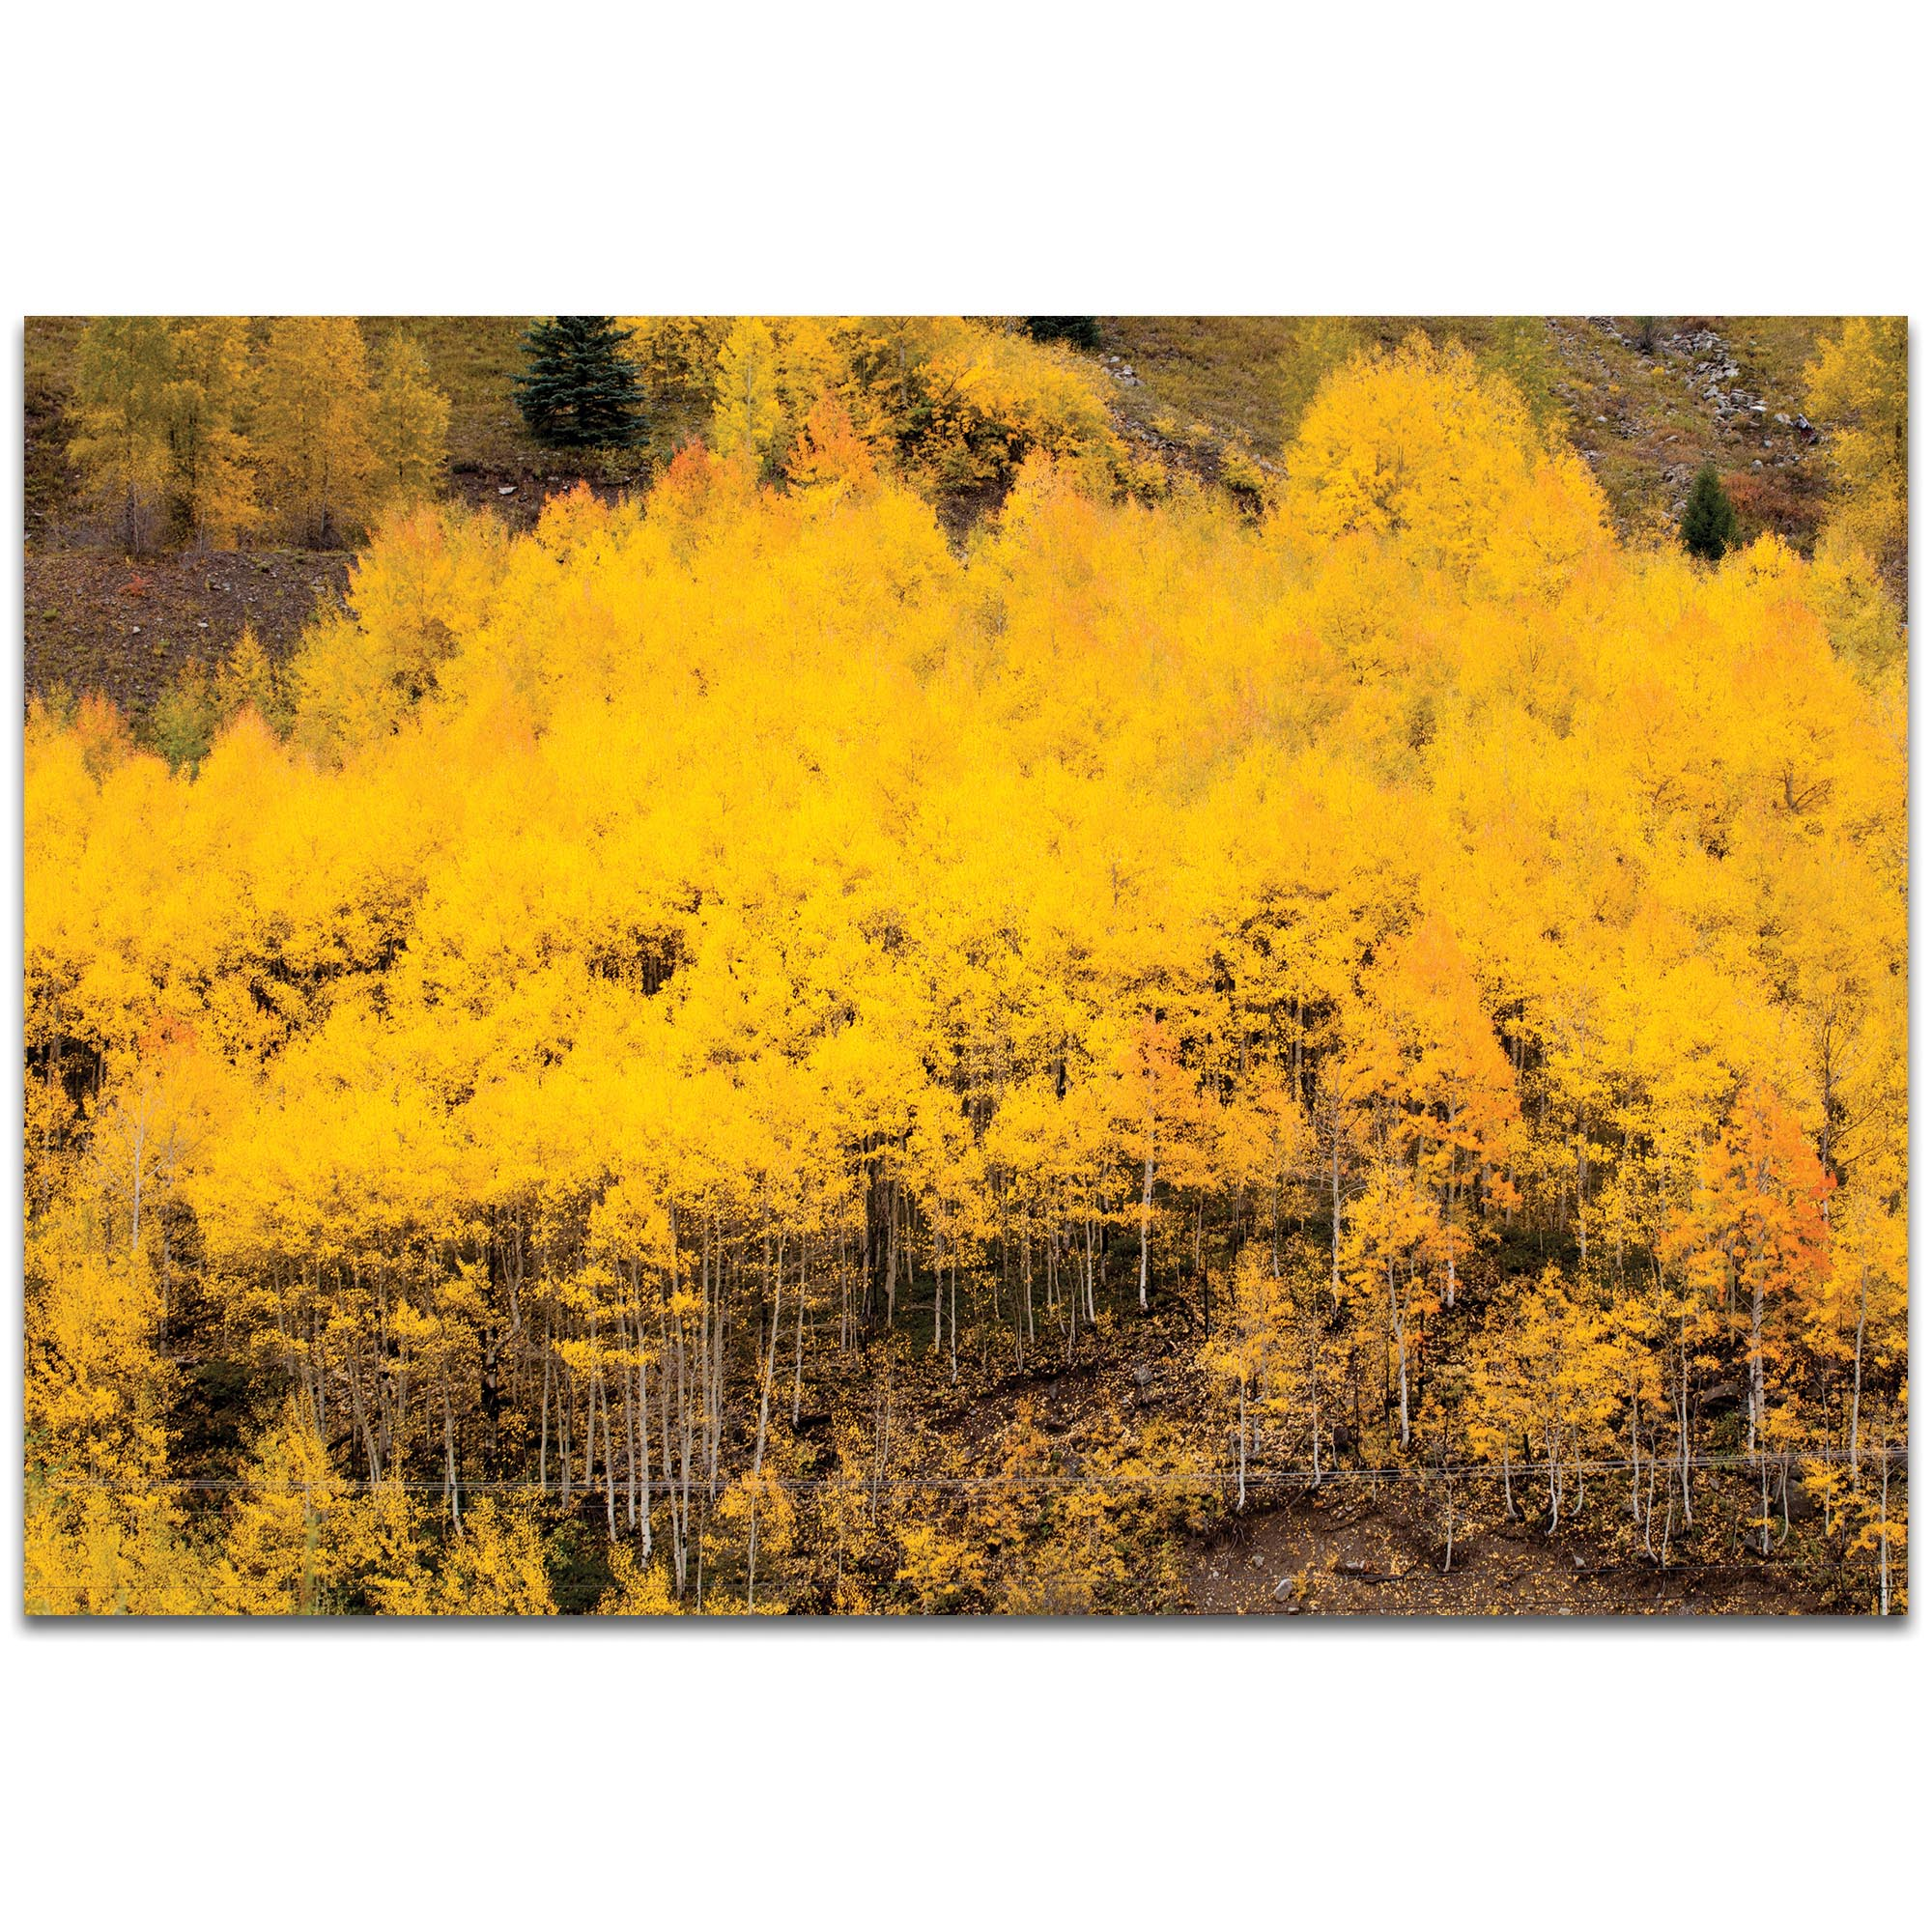 Landscape Photography 'Aspen Autumn' - Autumn Nature Art on Metal or Plexiglass